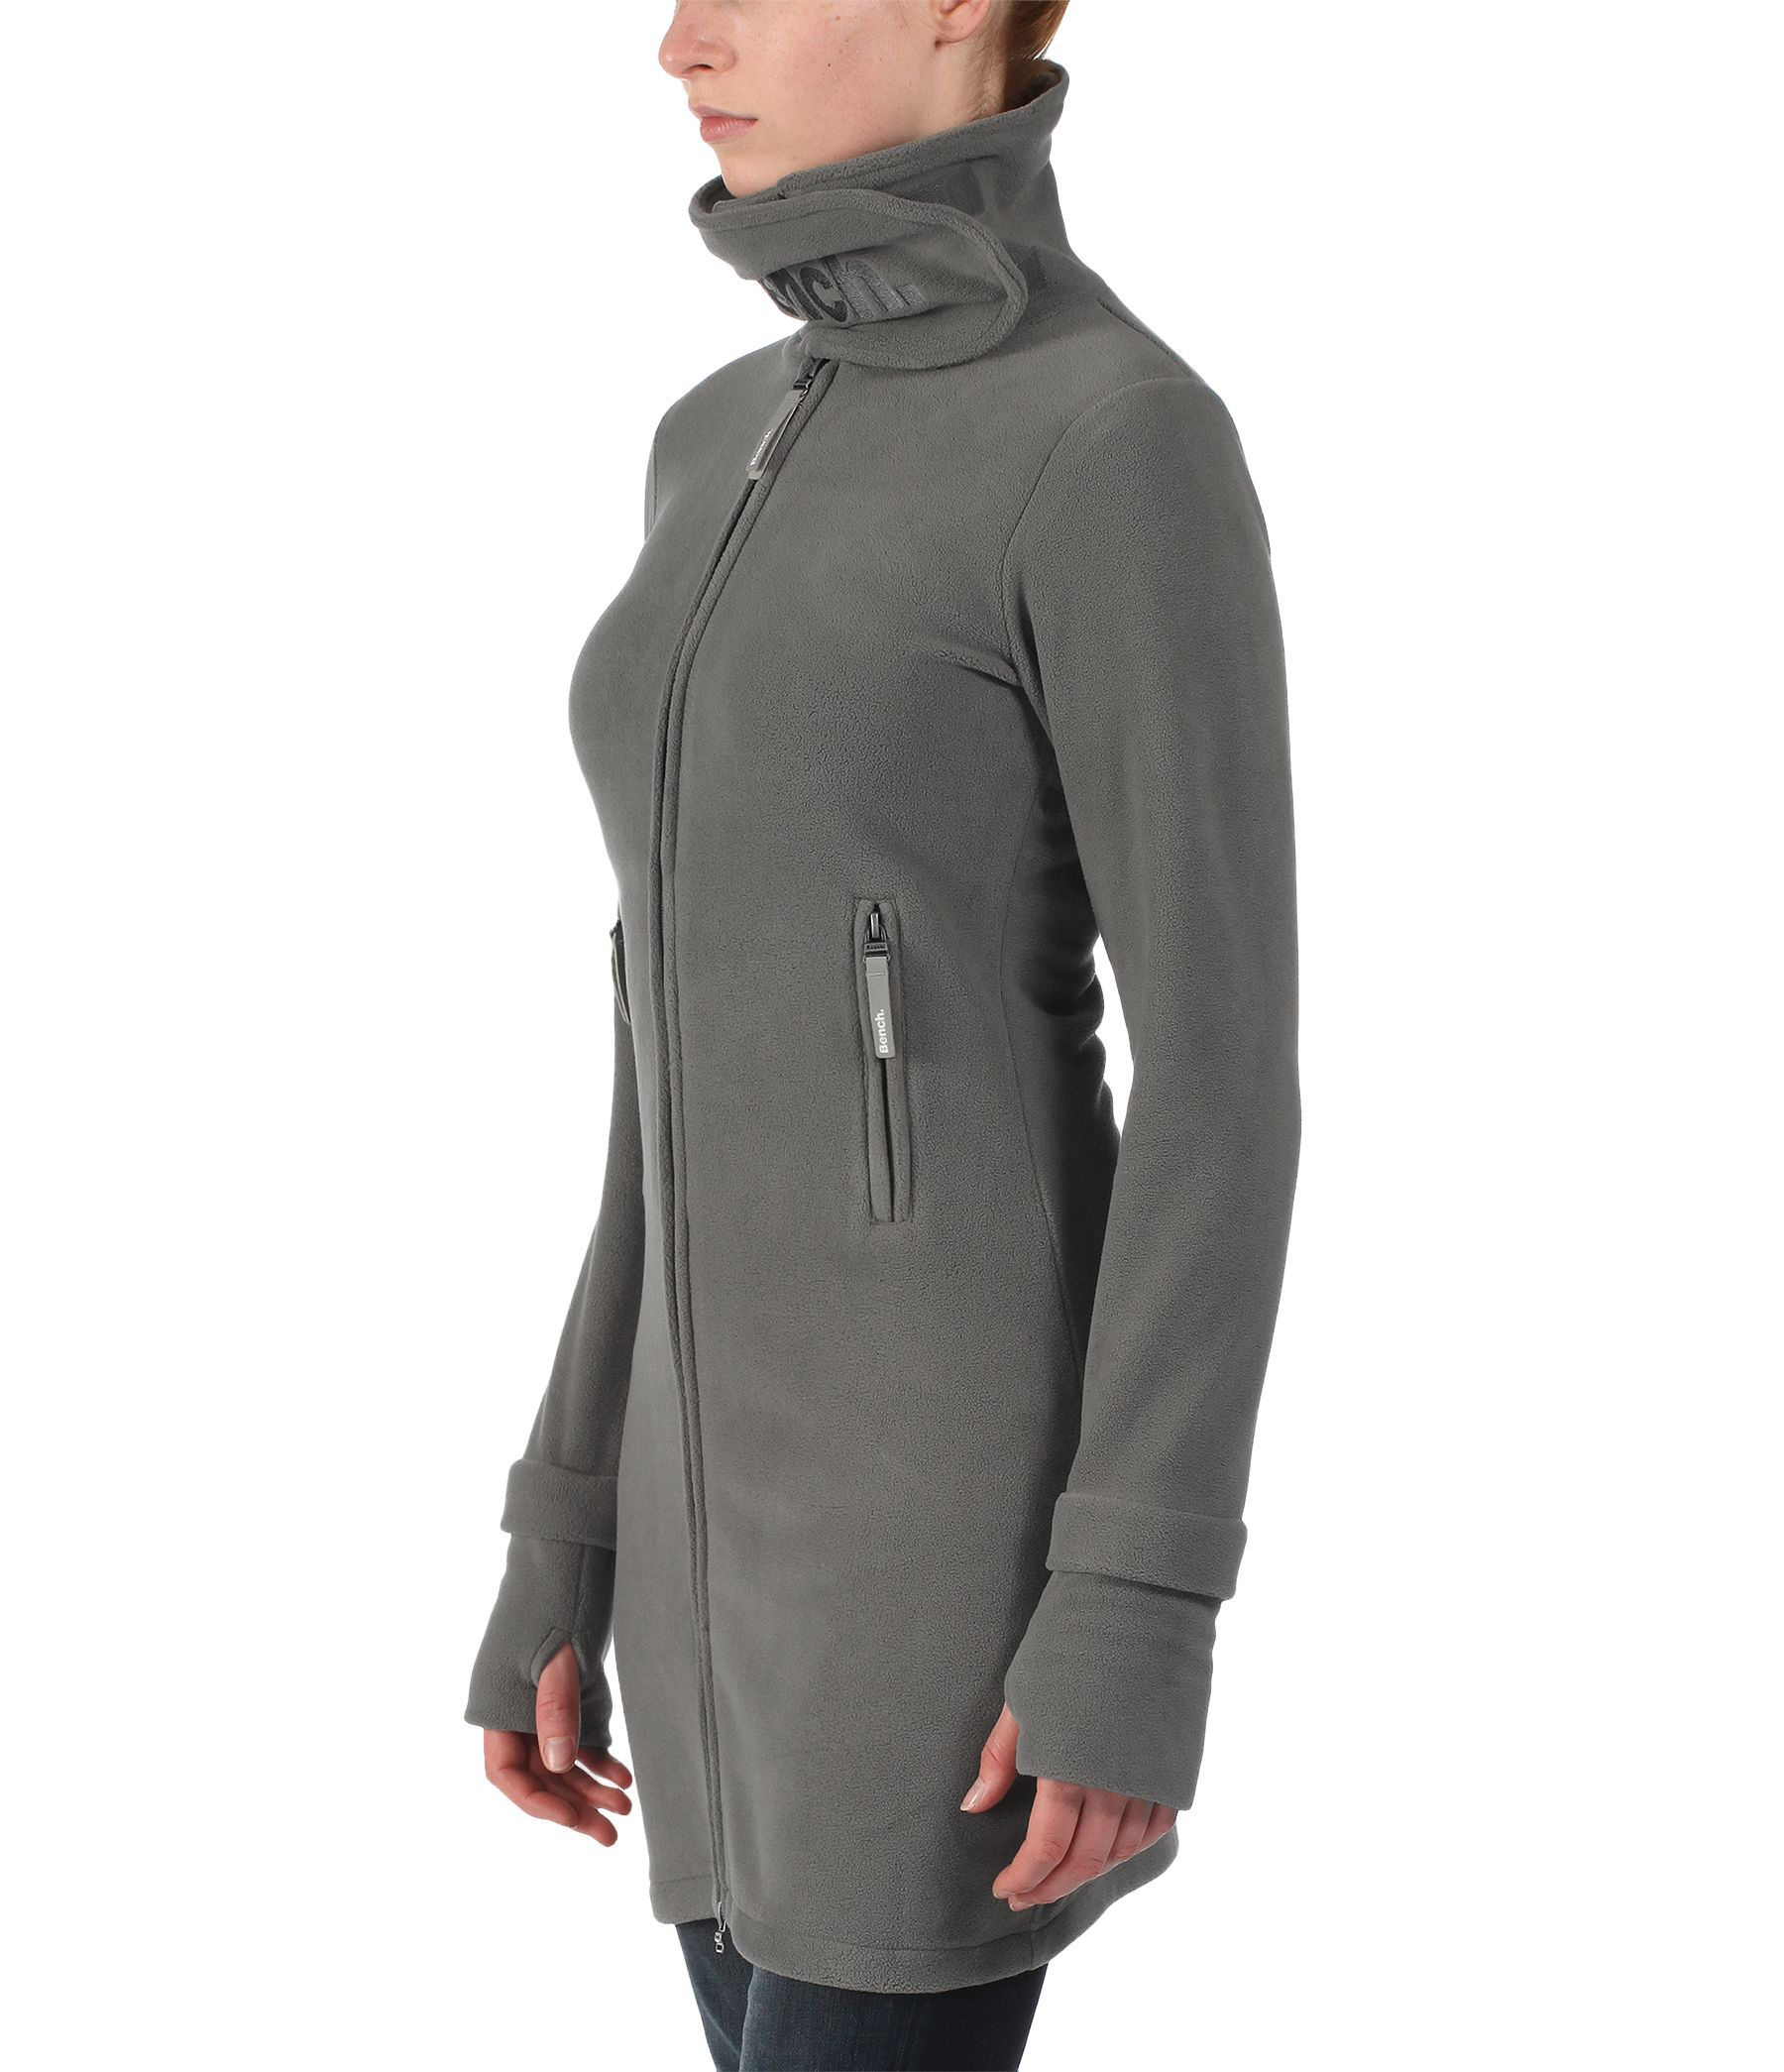 Bench Long Neck Zip Up Fleece Jacket in Gray | Lyst